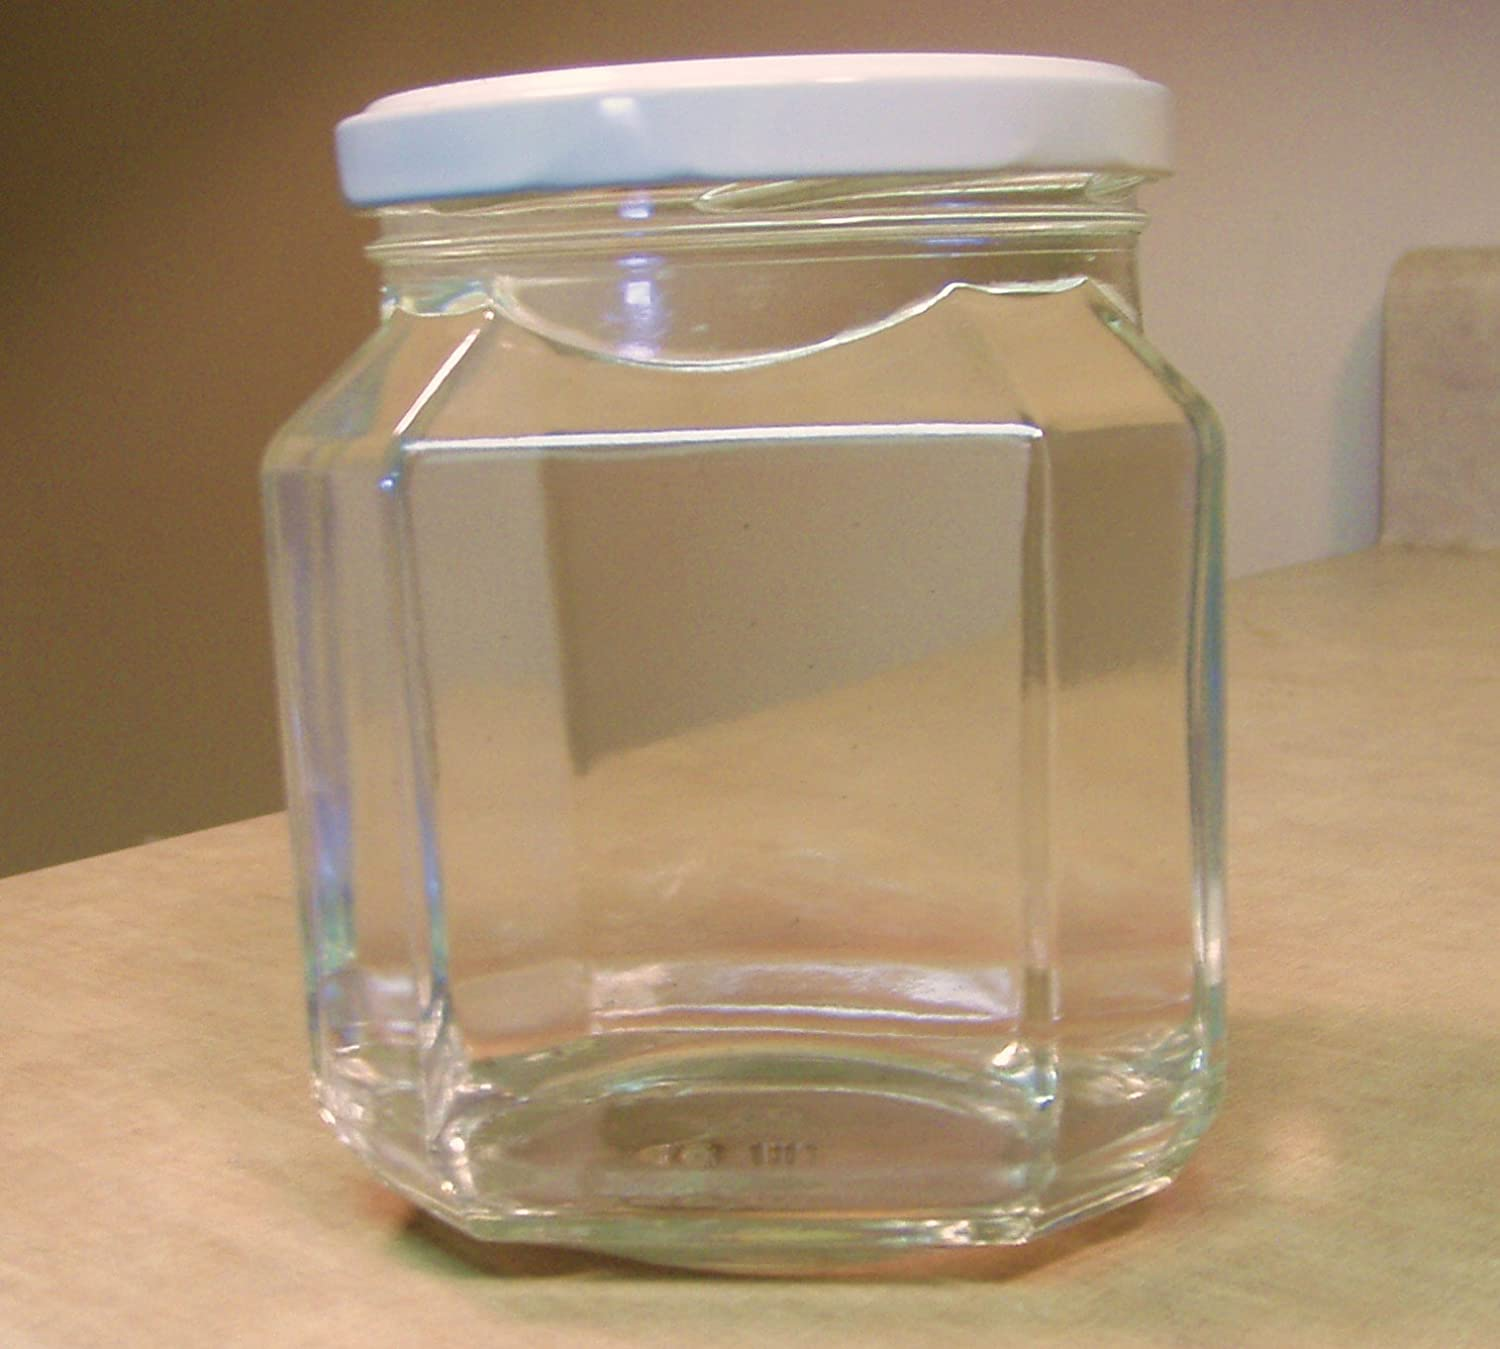 Food and Heat Safe Italian Faceted Jar - 20 Ounce - 6 Pieces Candle, Food, Storage and Canning